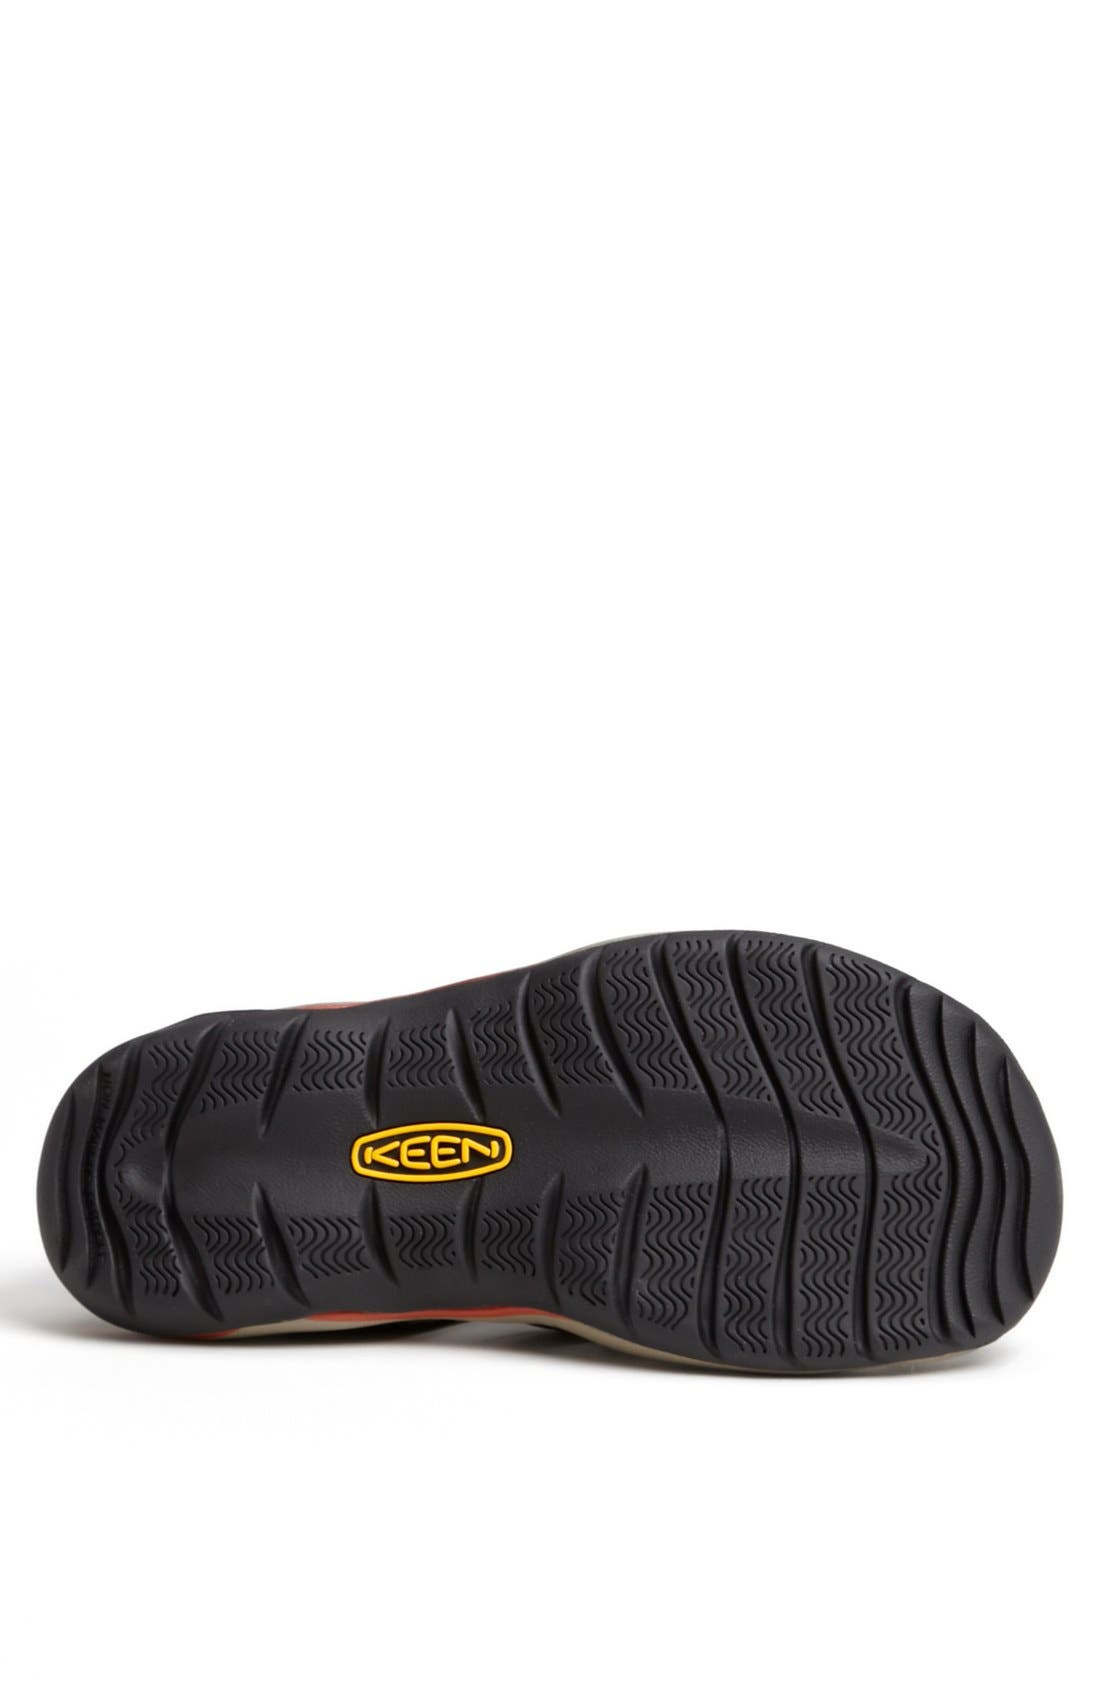 Alternate Image 4  - Keen 'Kanyon' Waterproof Sandal (Men)